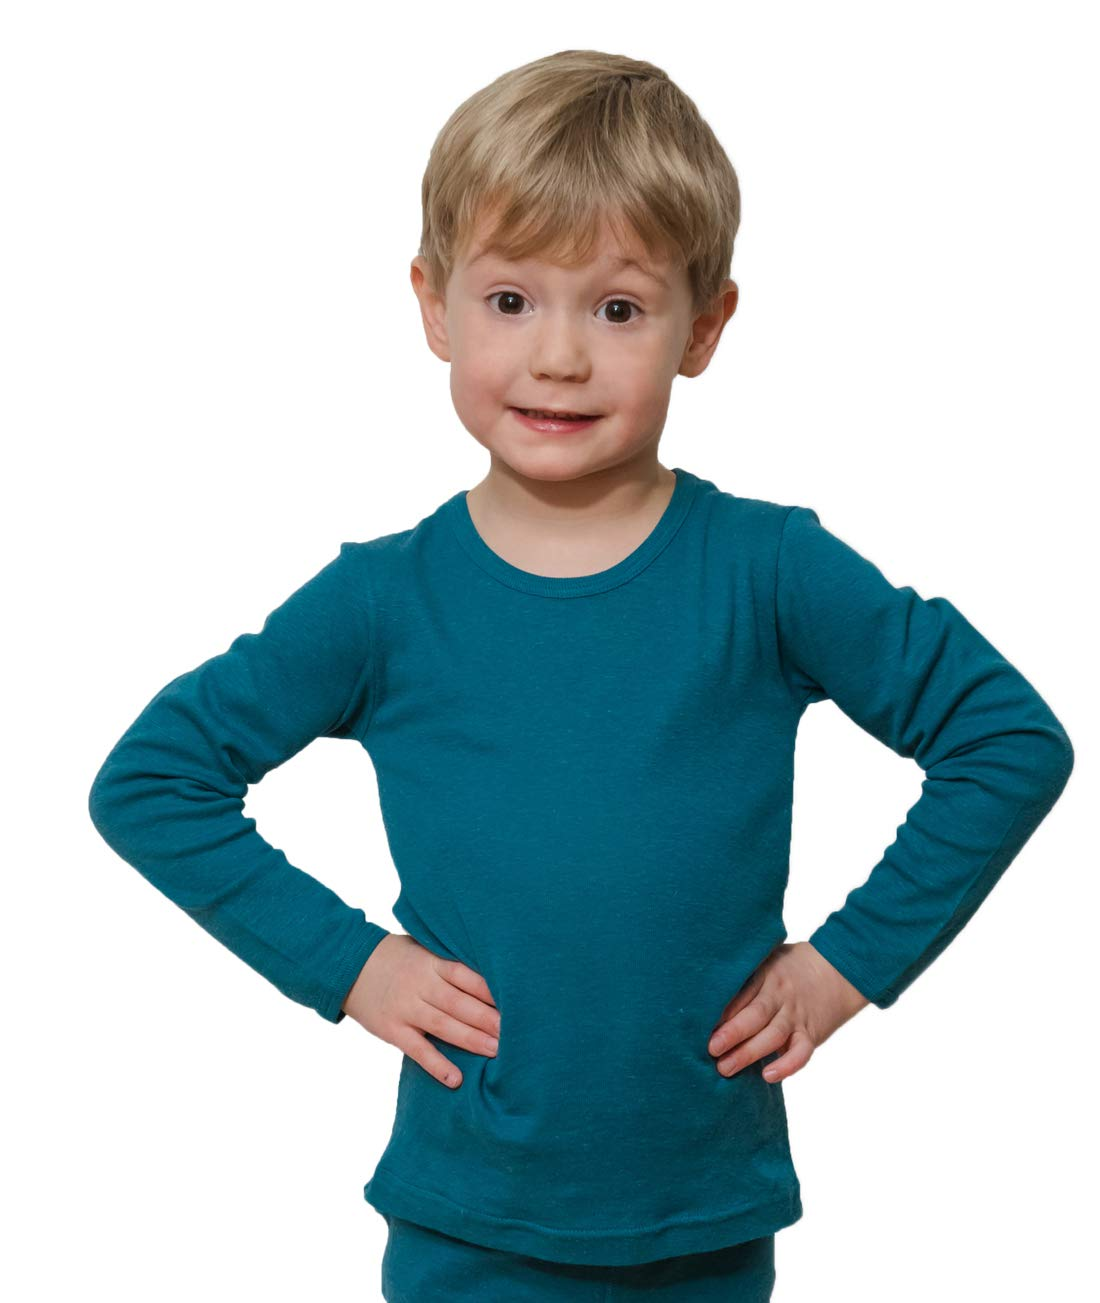 HOCOSA Children's Long Underwear Shirt, Long Sleeves in Organic Cotton/Hemp, Seagreen-Blue, Size 128 (8 yr, 50 in Tall) by Hocosa of Switzerland